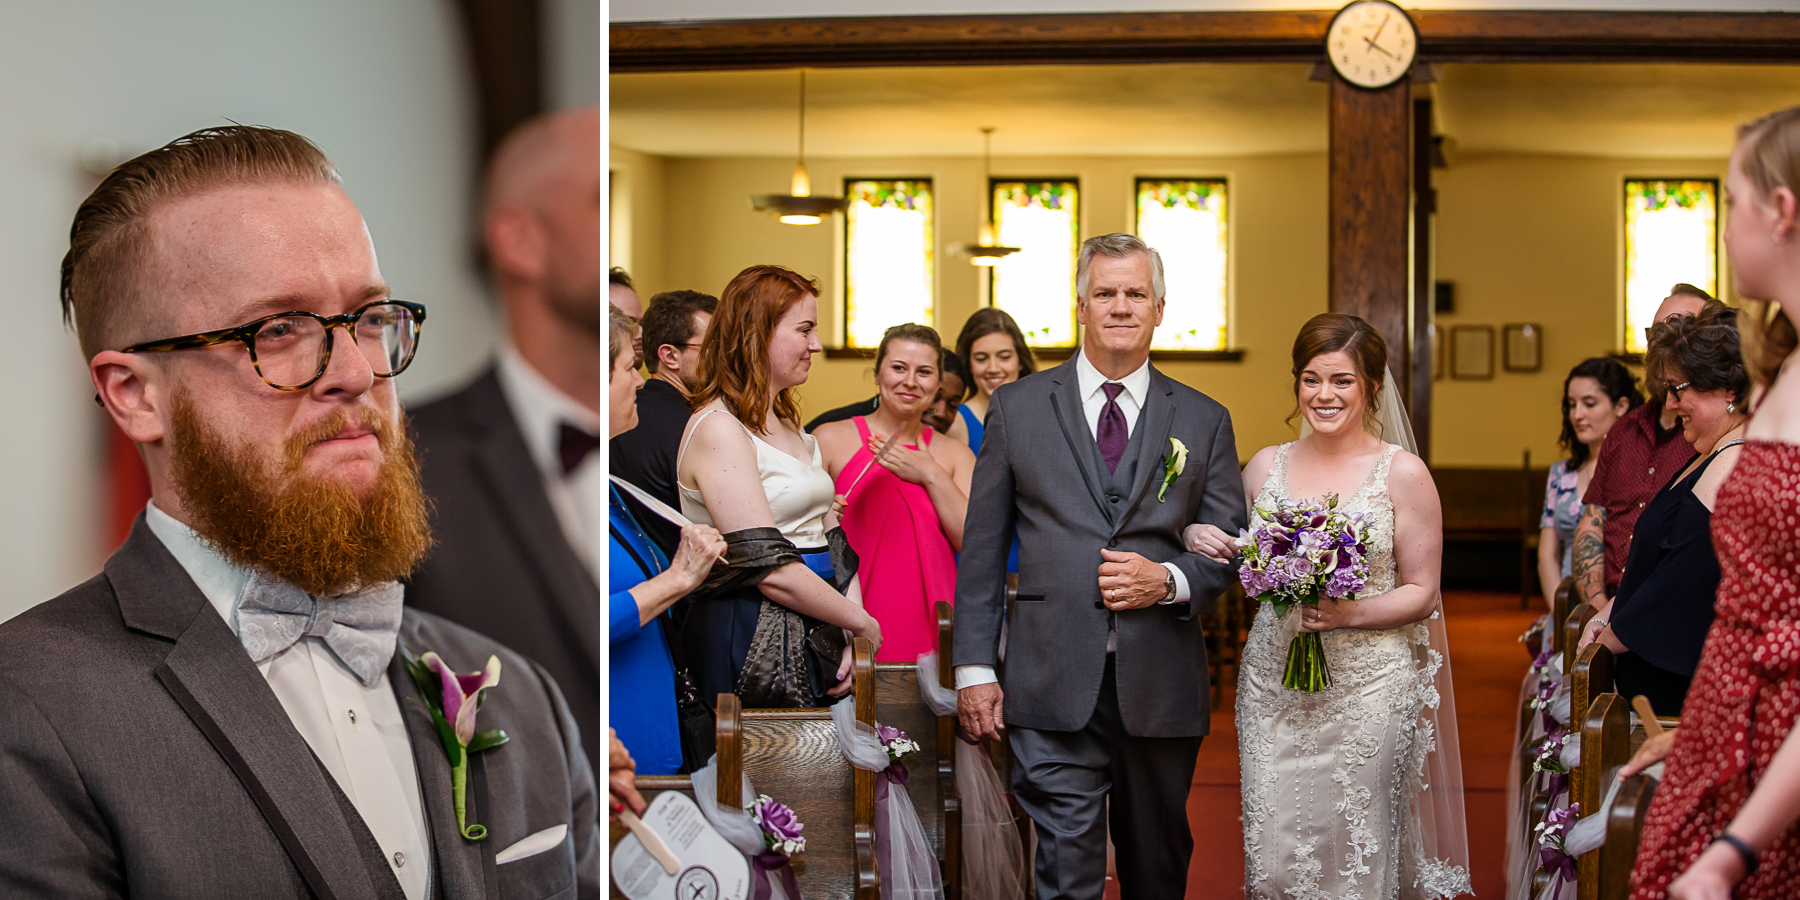 Groom sees bride as she walks down aisle with father